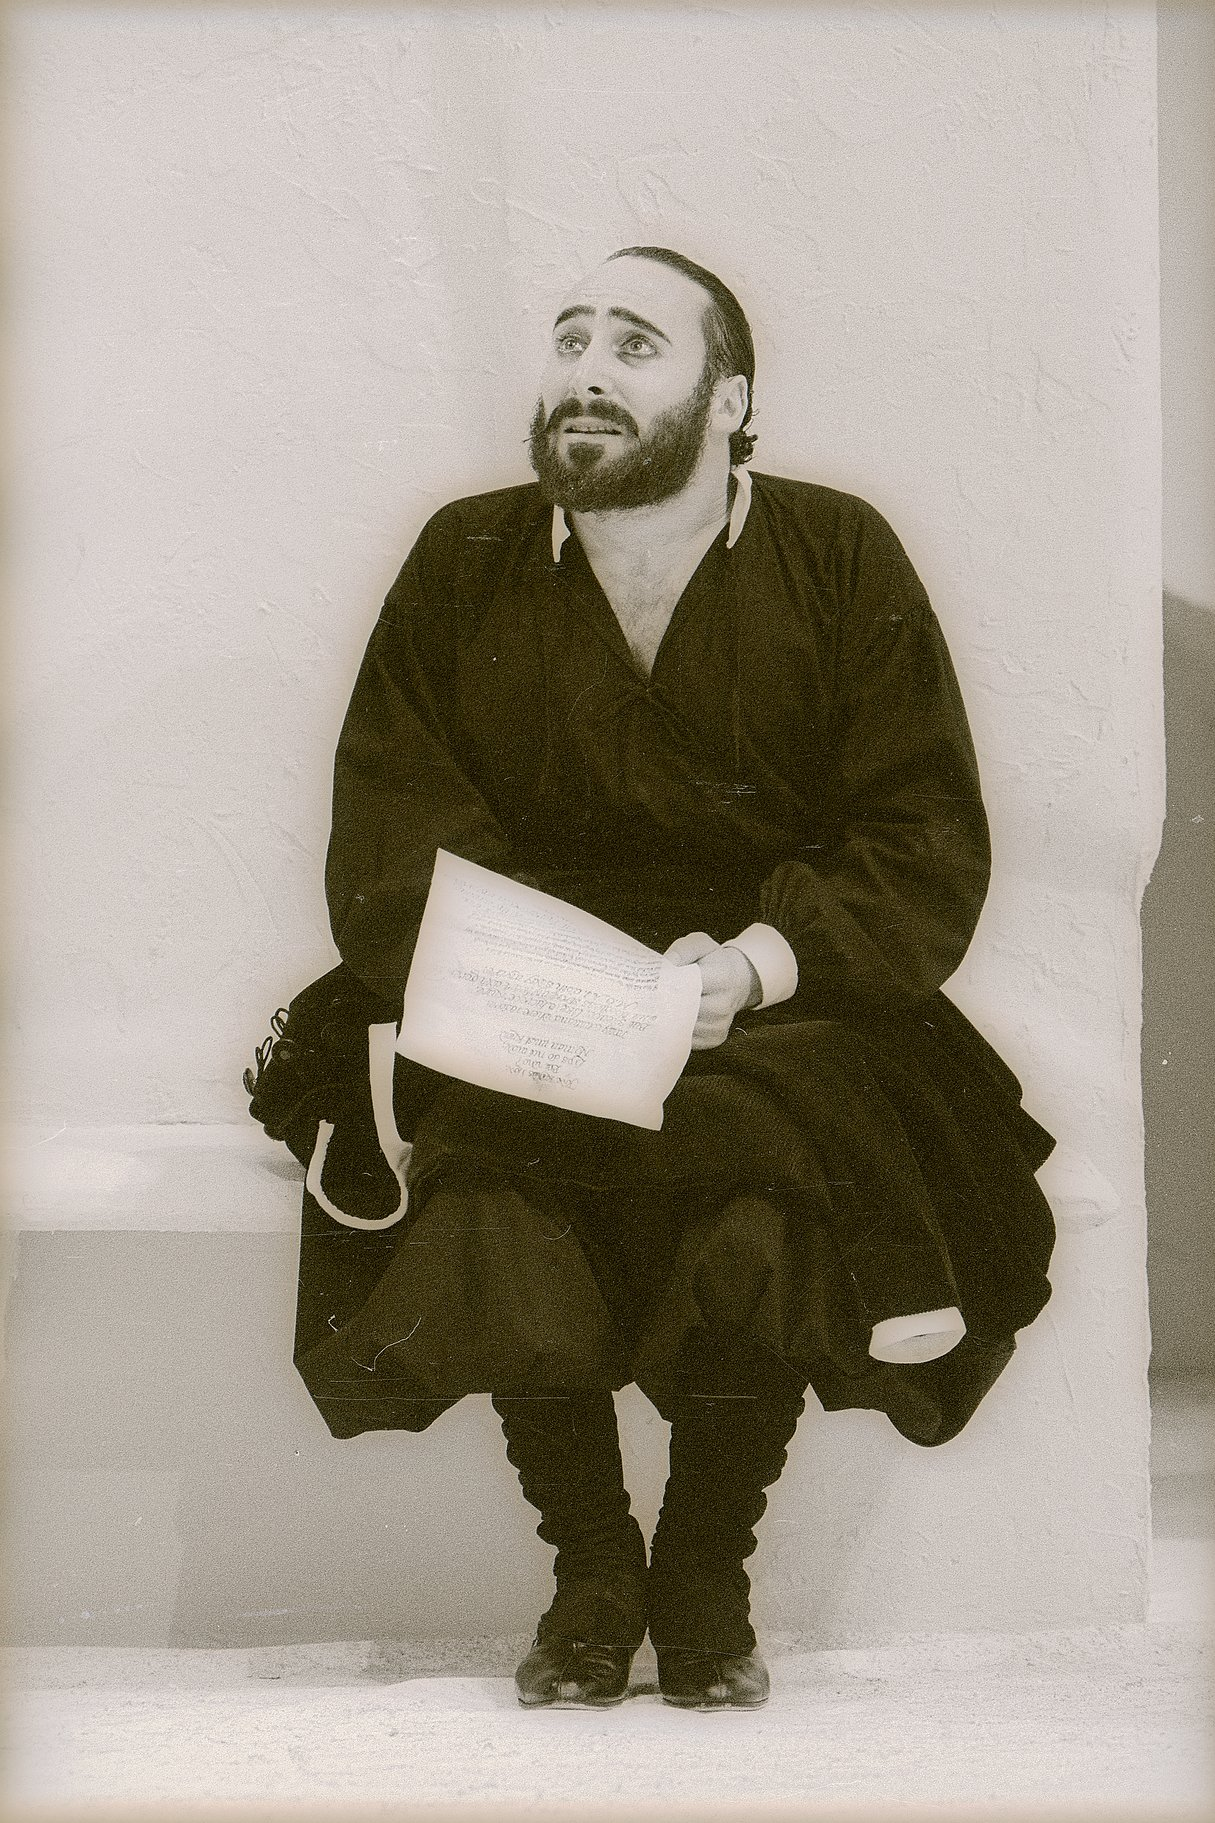 Malvolio sits looking upwards, holding a letter